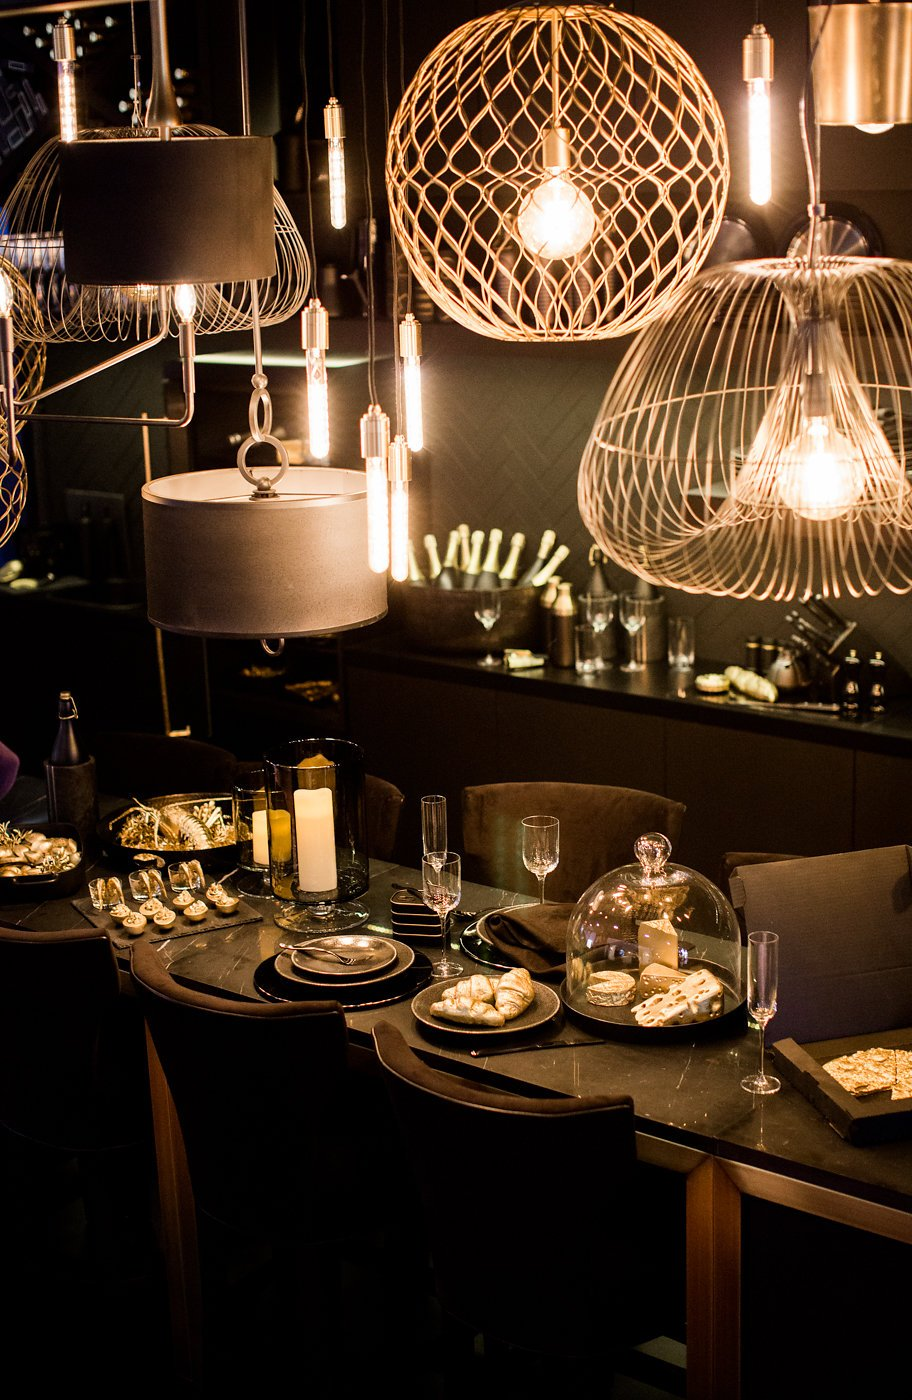 Glimpse at table with golden food and pendant lighting in gold